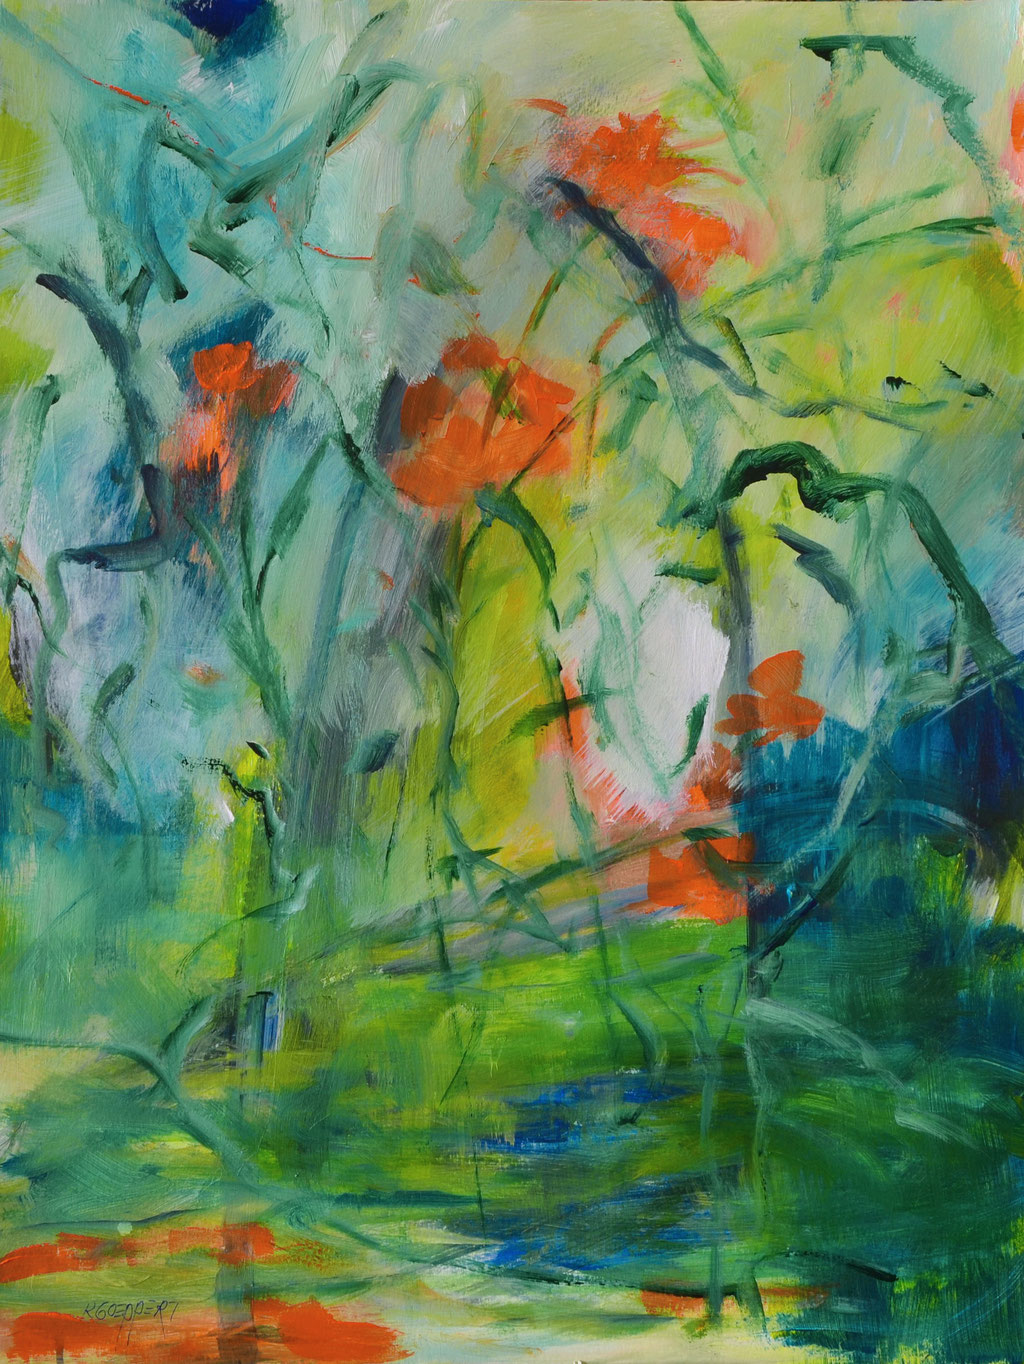 Floris 56 x 42 cm / 22 x 16.5 in - acryl on paper - sold